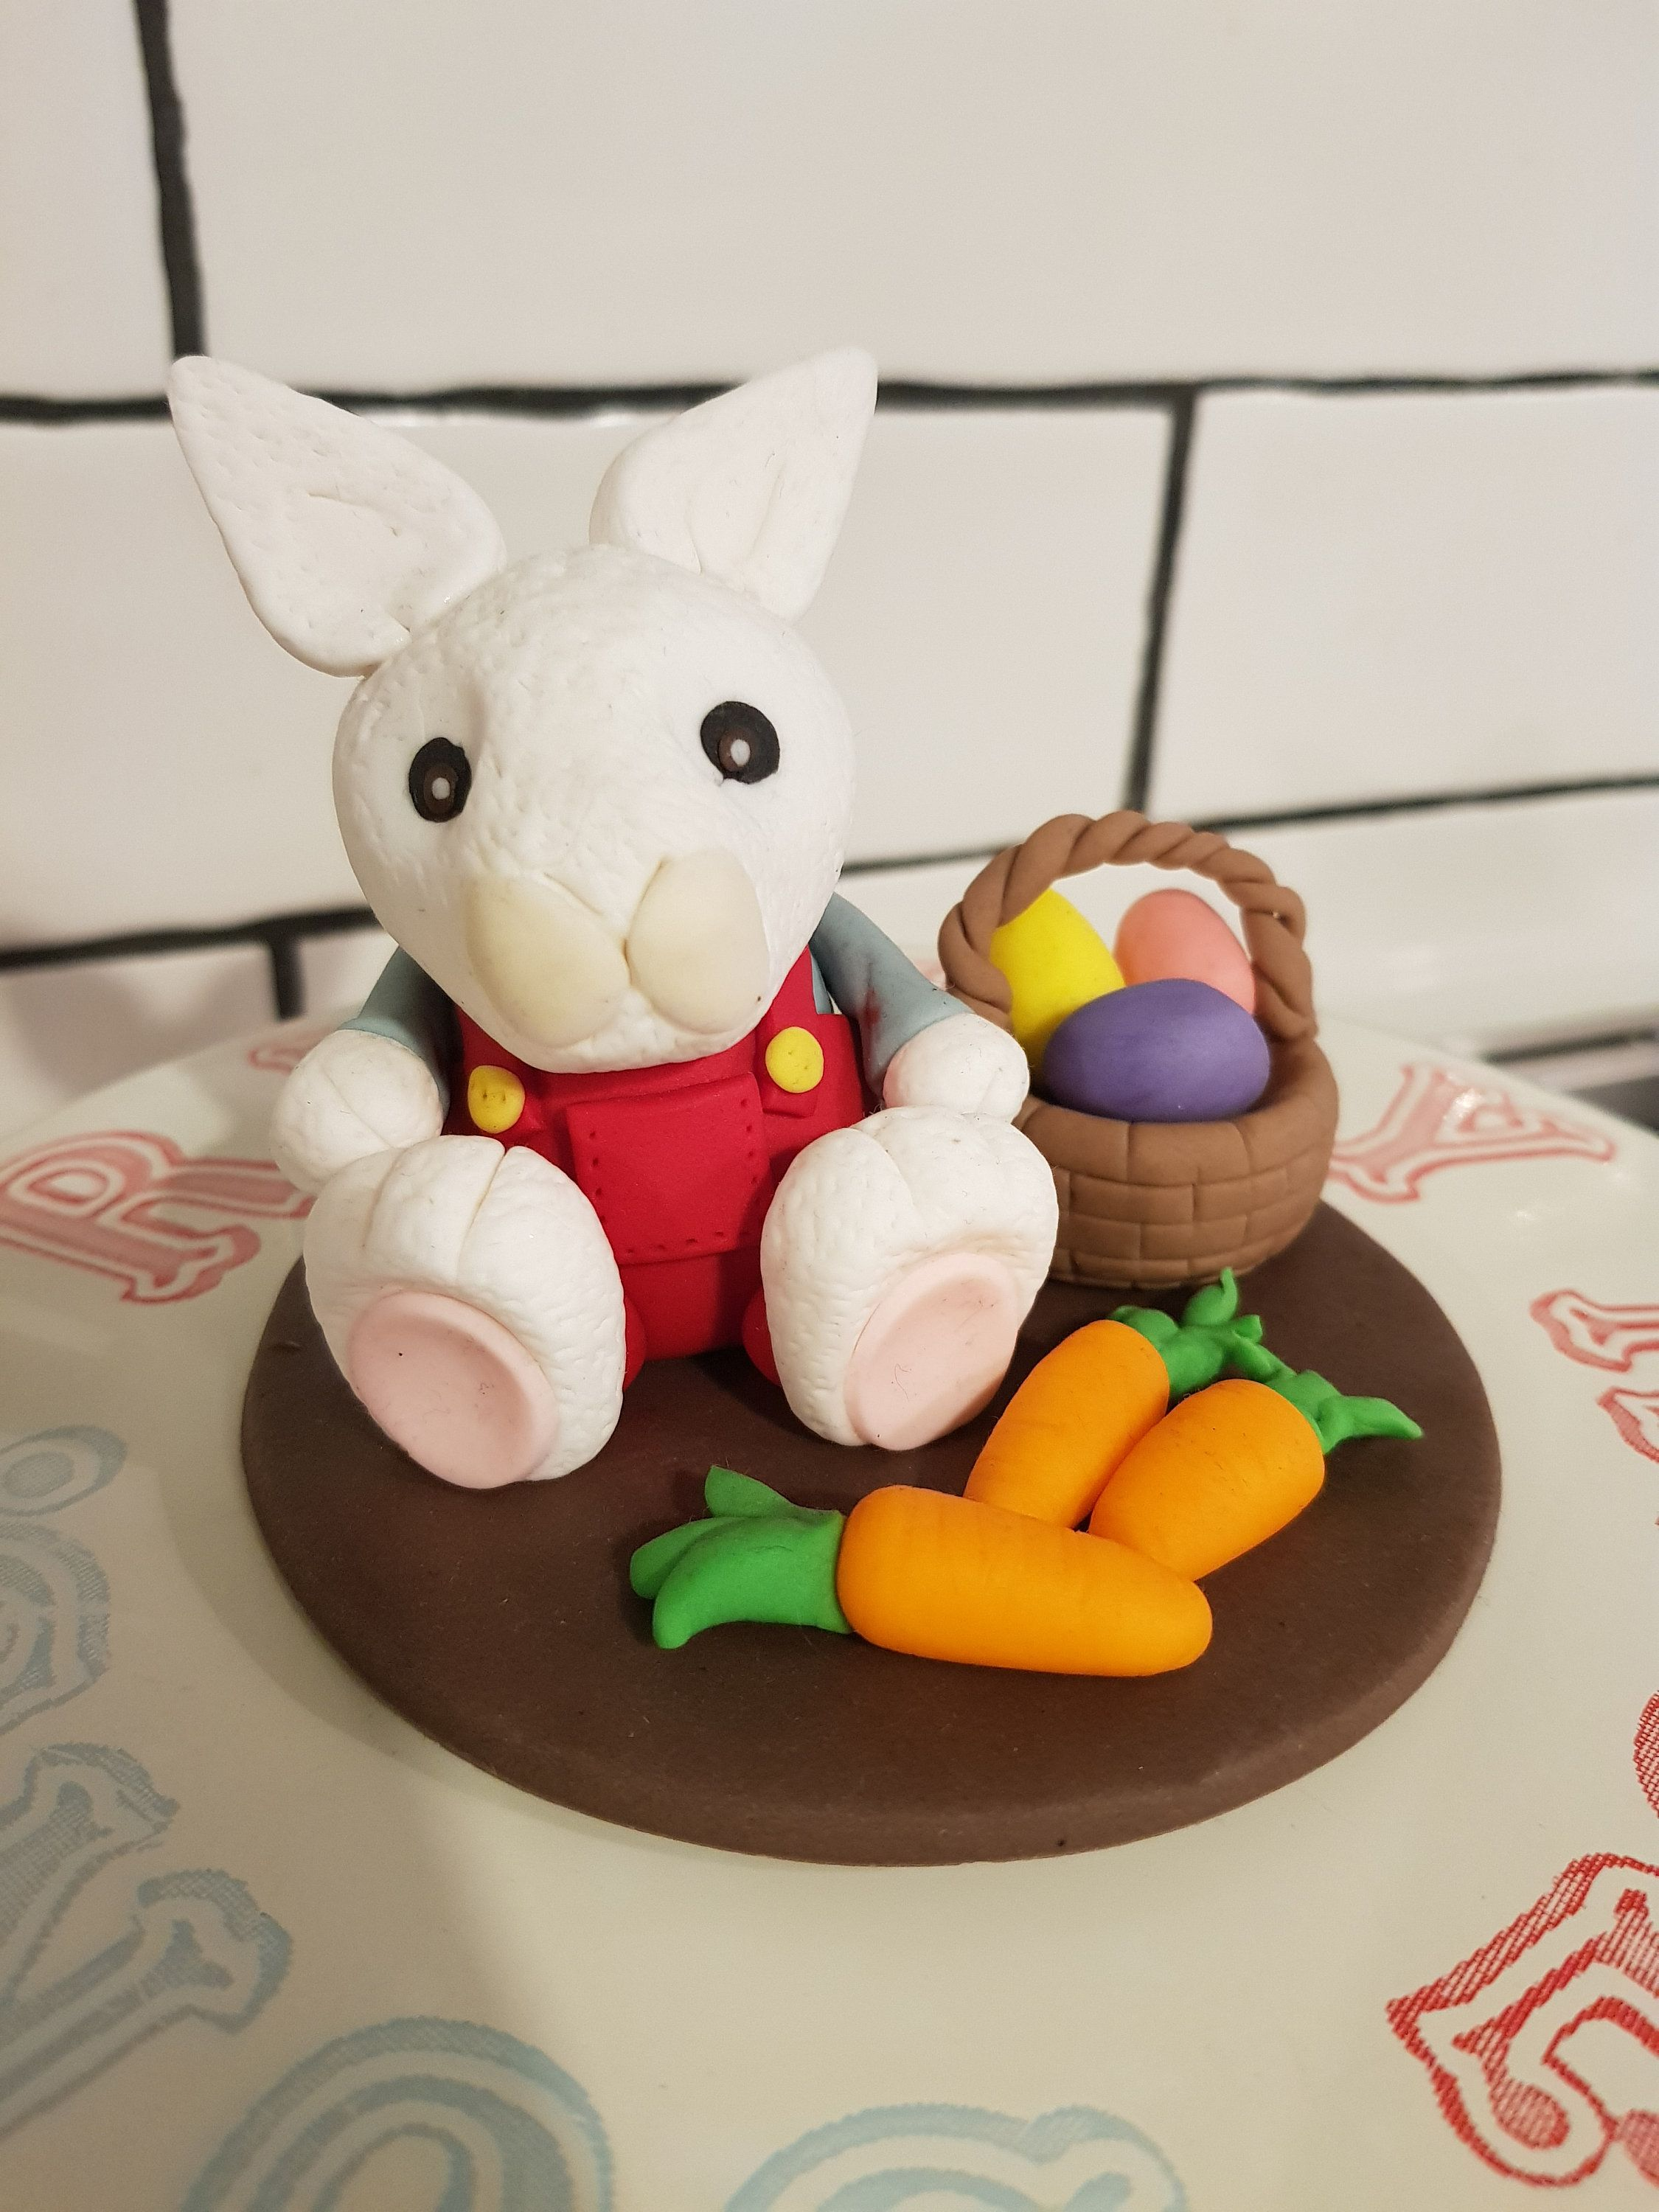 Bunny in red overalls with carrots and a basket fondant